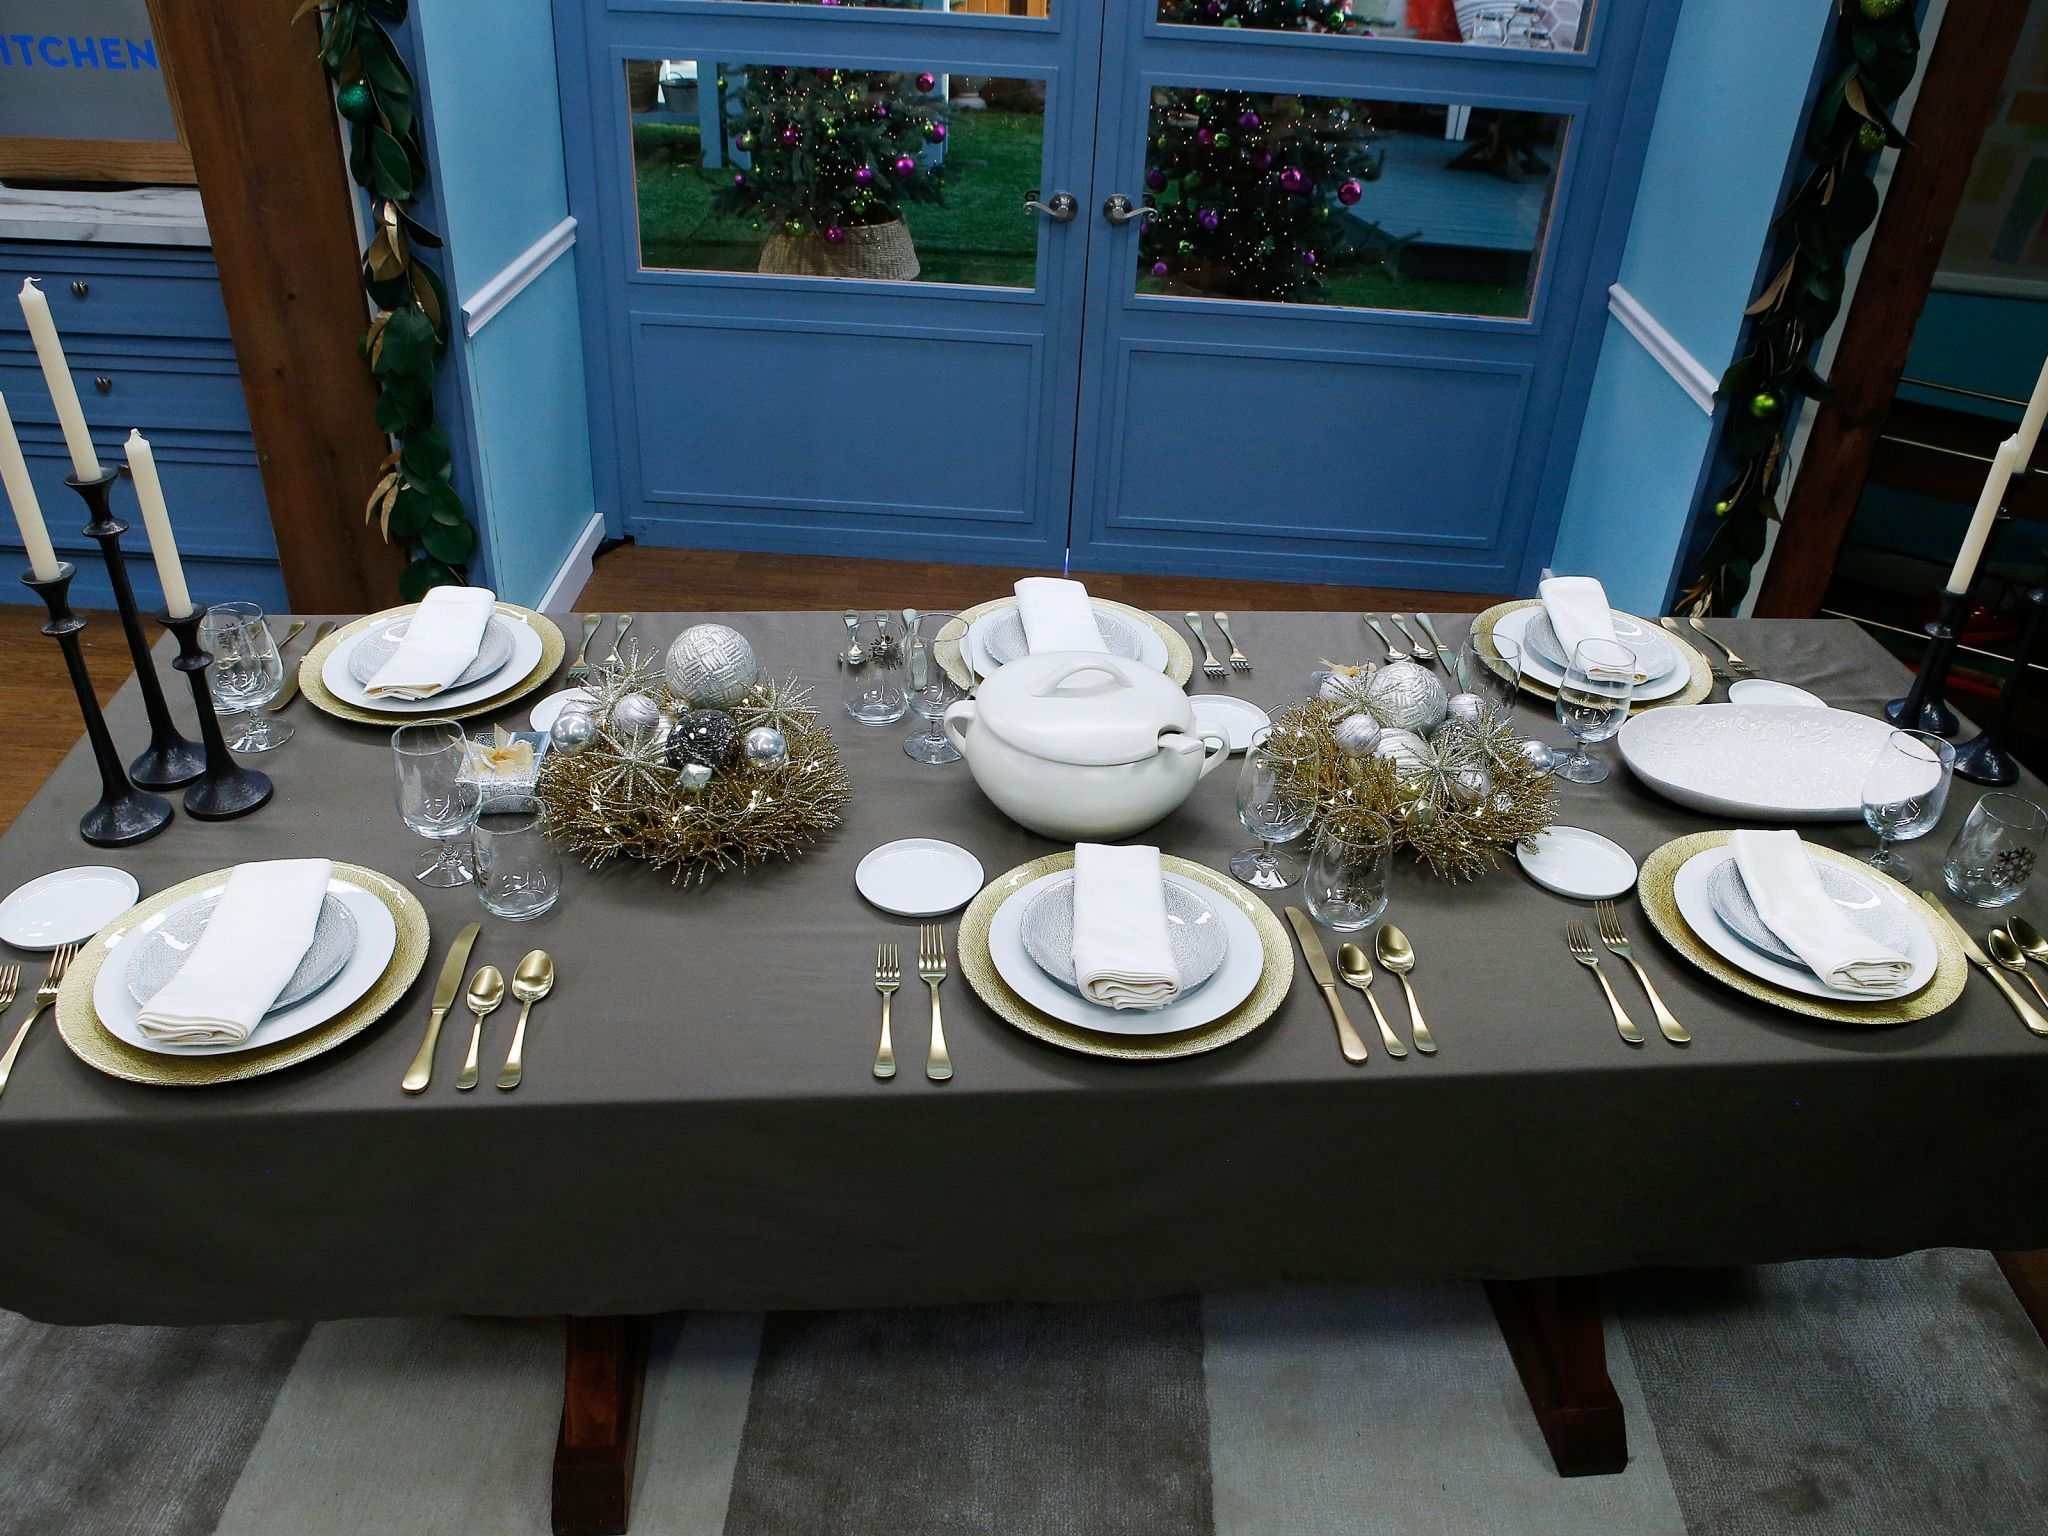 Set A Table That Sparkles The Kitchen Show Holiday Tablescapes Food Network Recipes